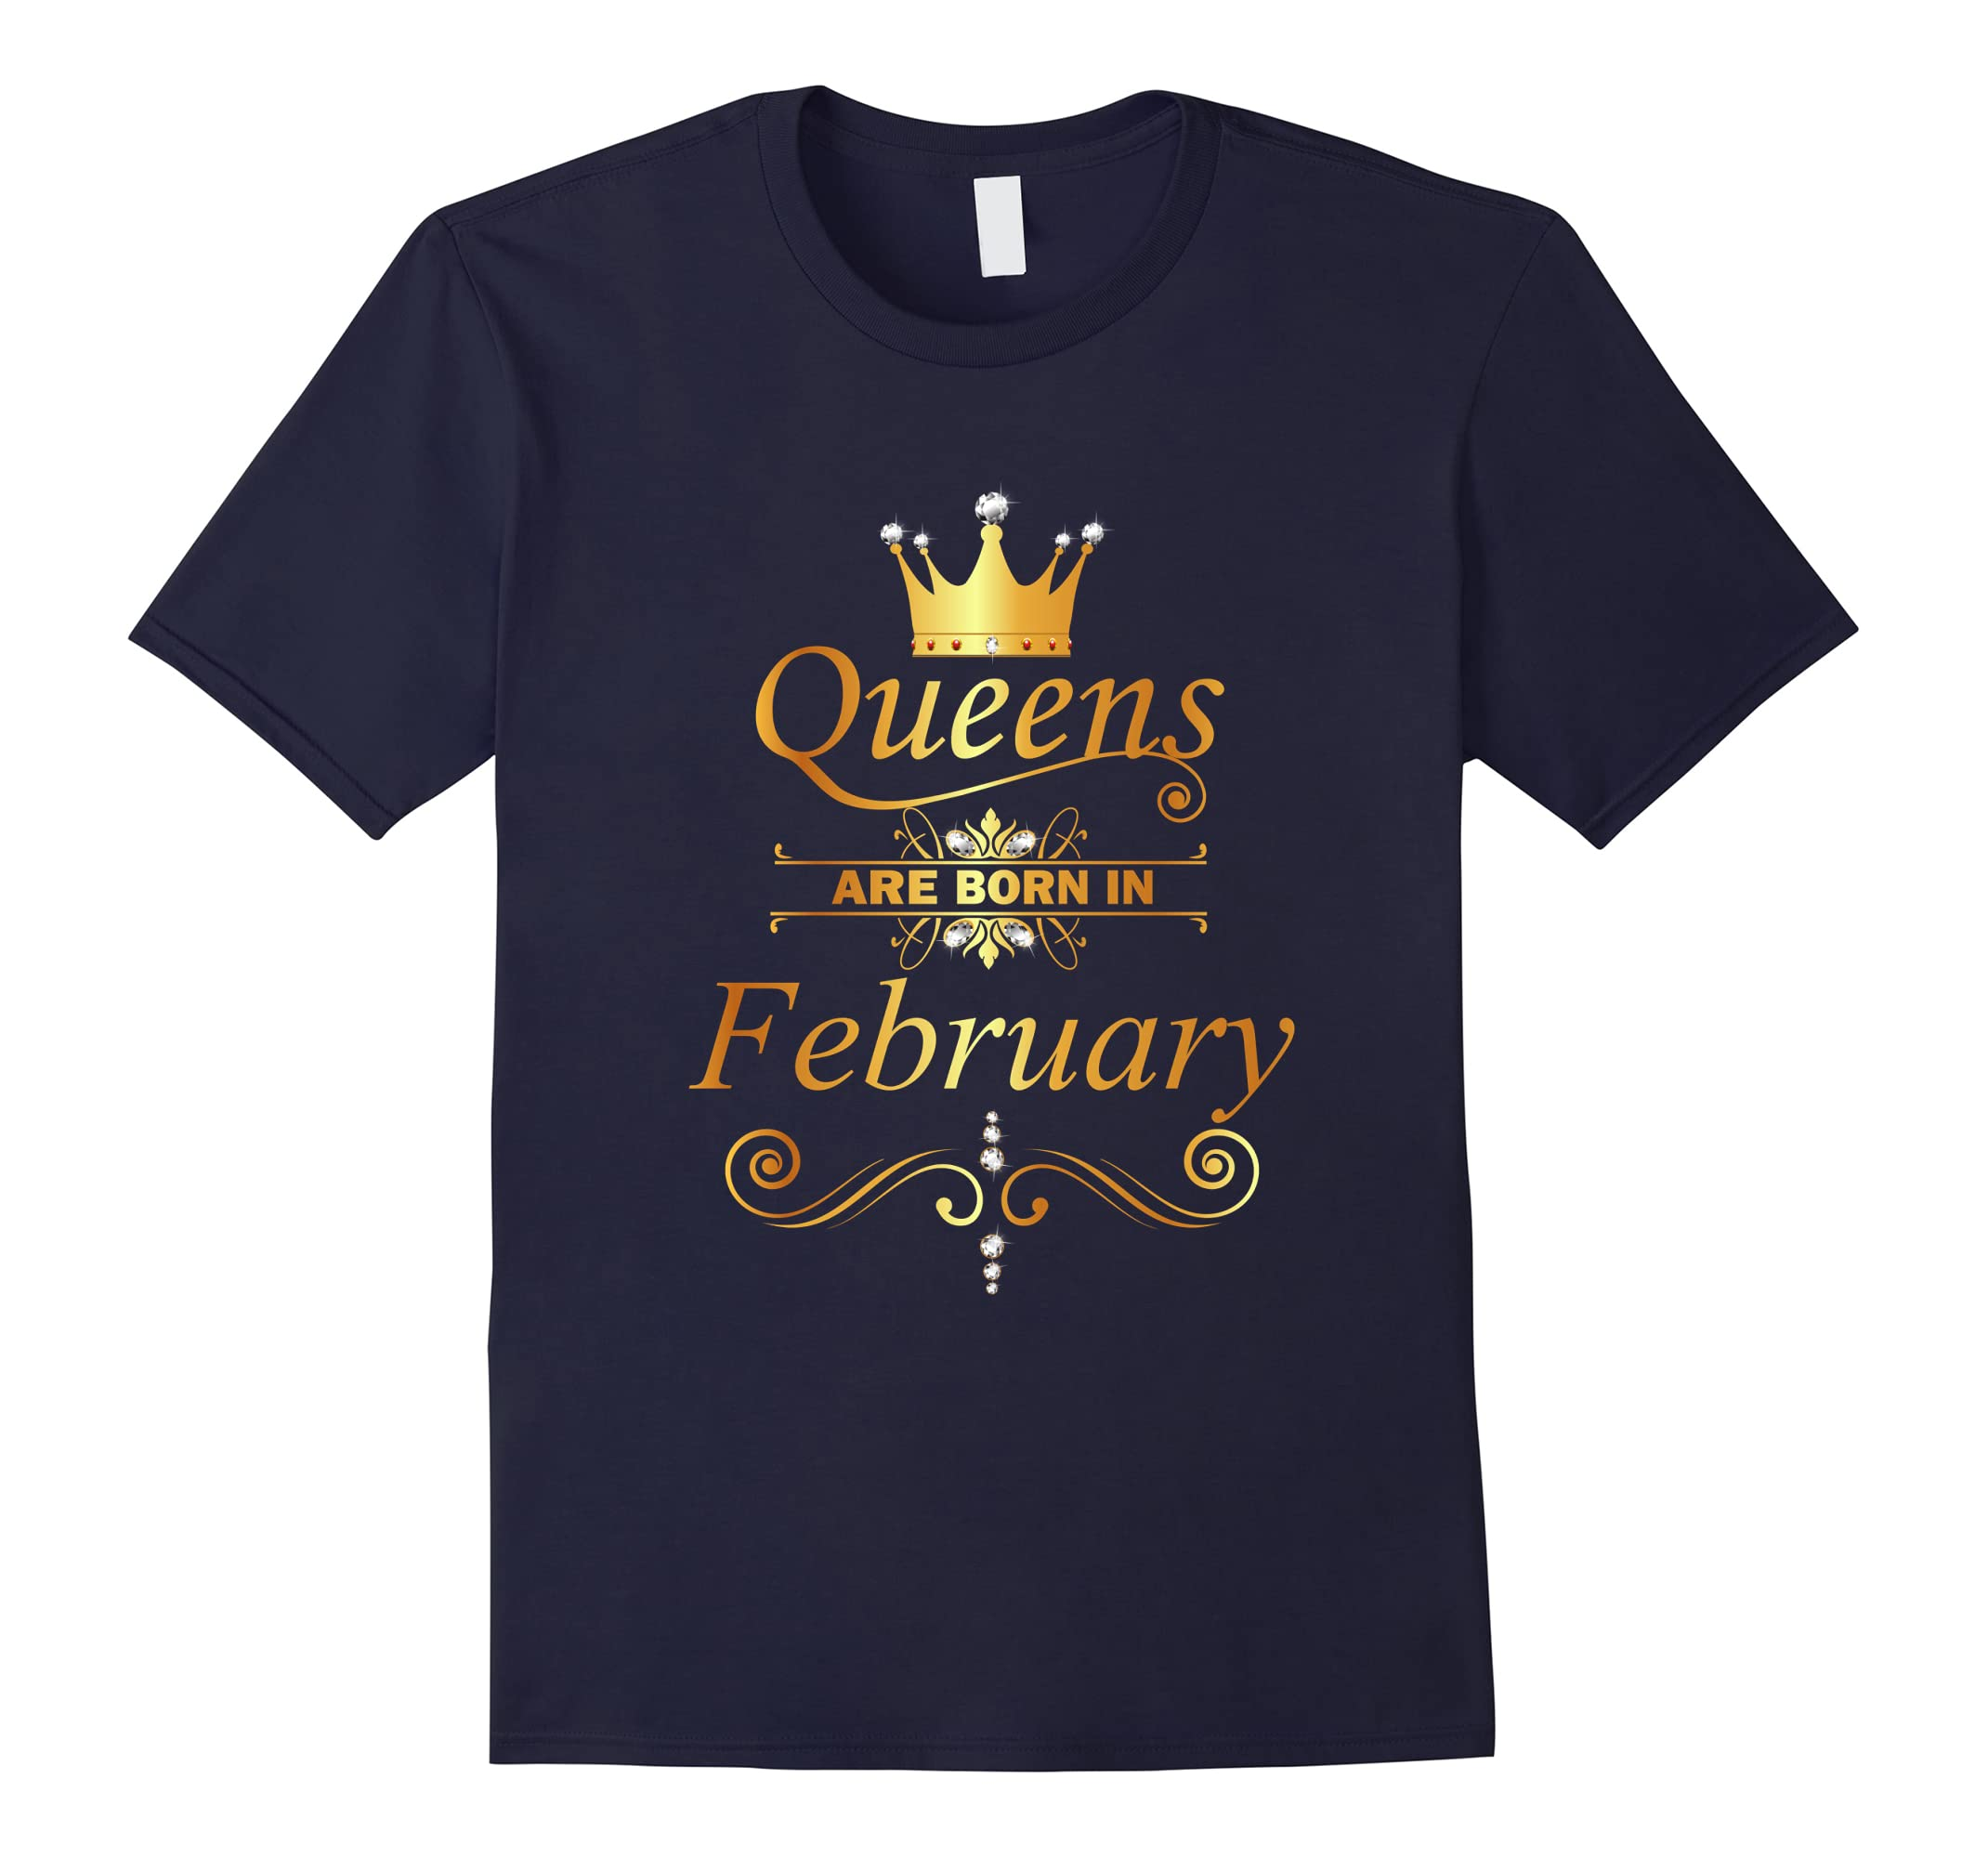 Queens Are Born In February Shirt - Diamond Edition Tee-ah my shirt one gift